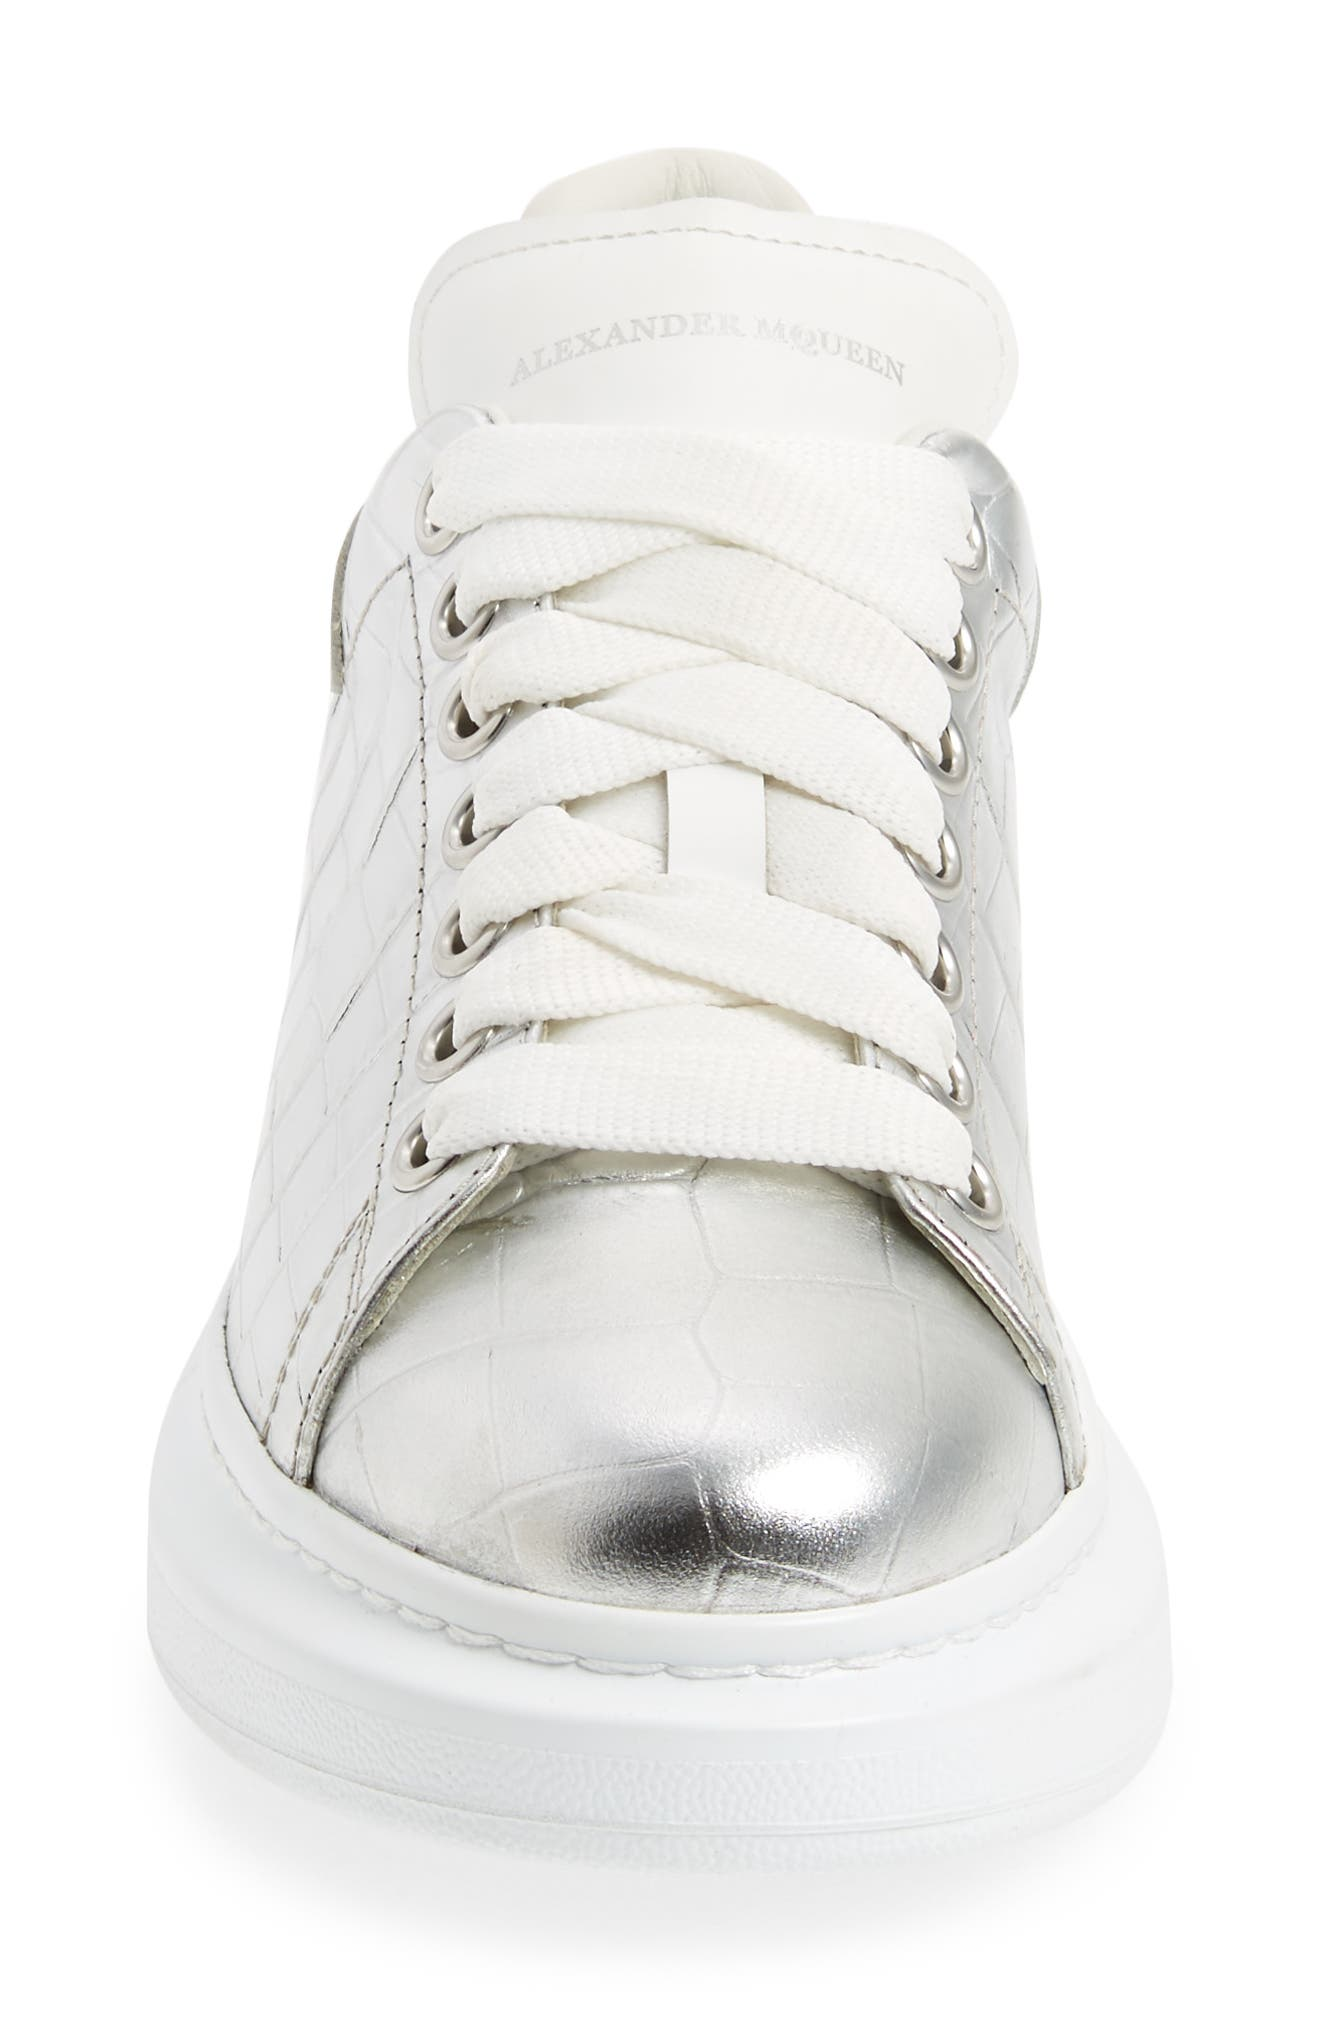 Croc Embossed Lace-Up Sneaker,                             Alternate thumbnail 4, color,                             Metallic Silver